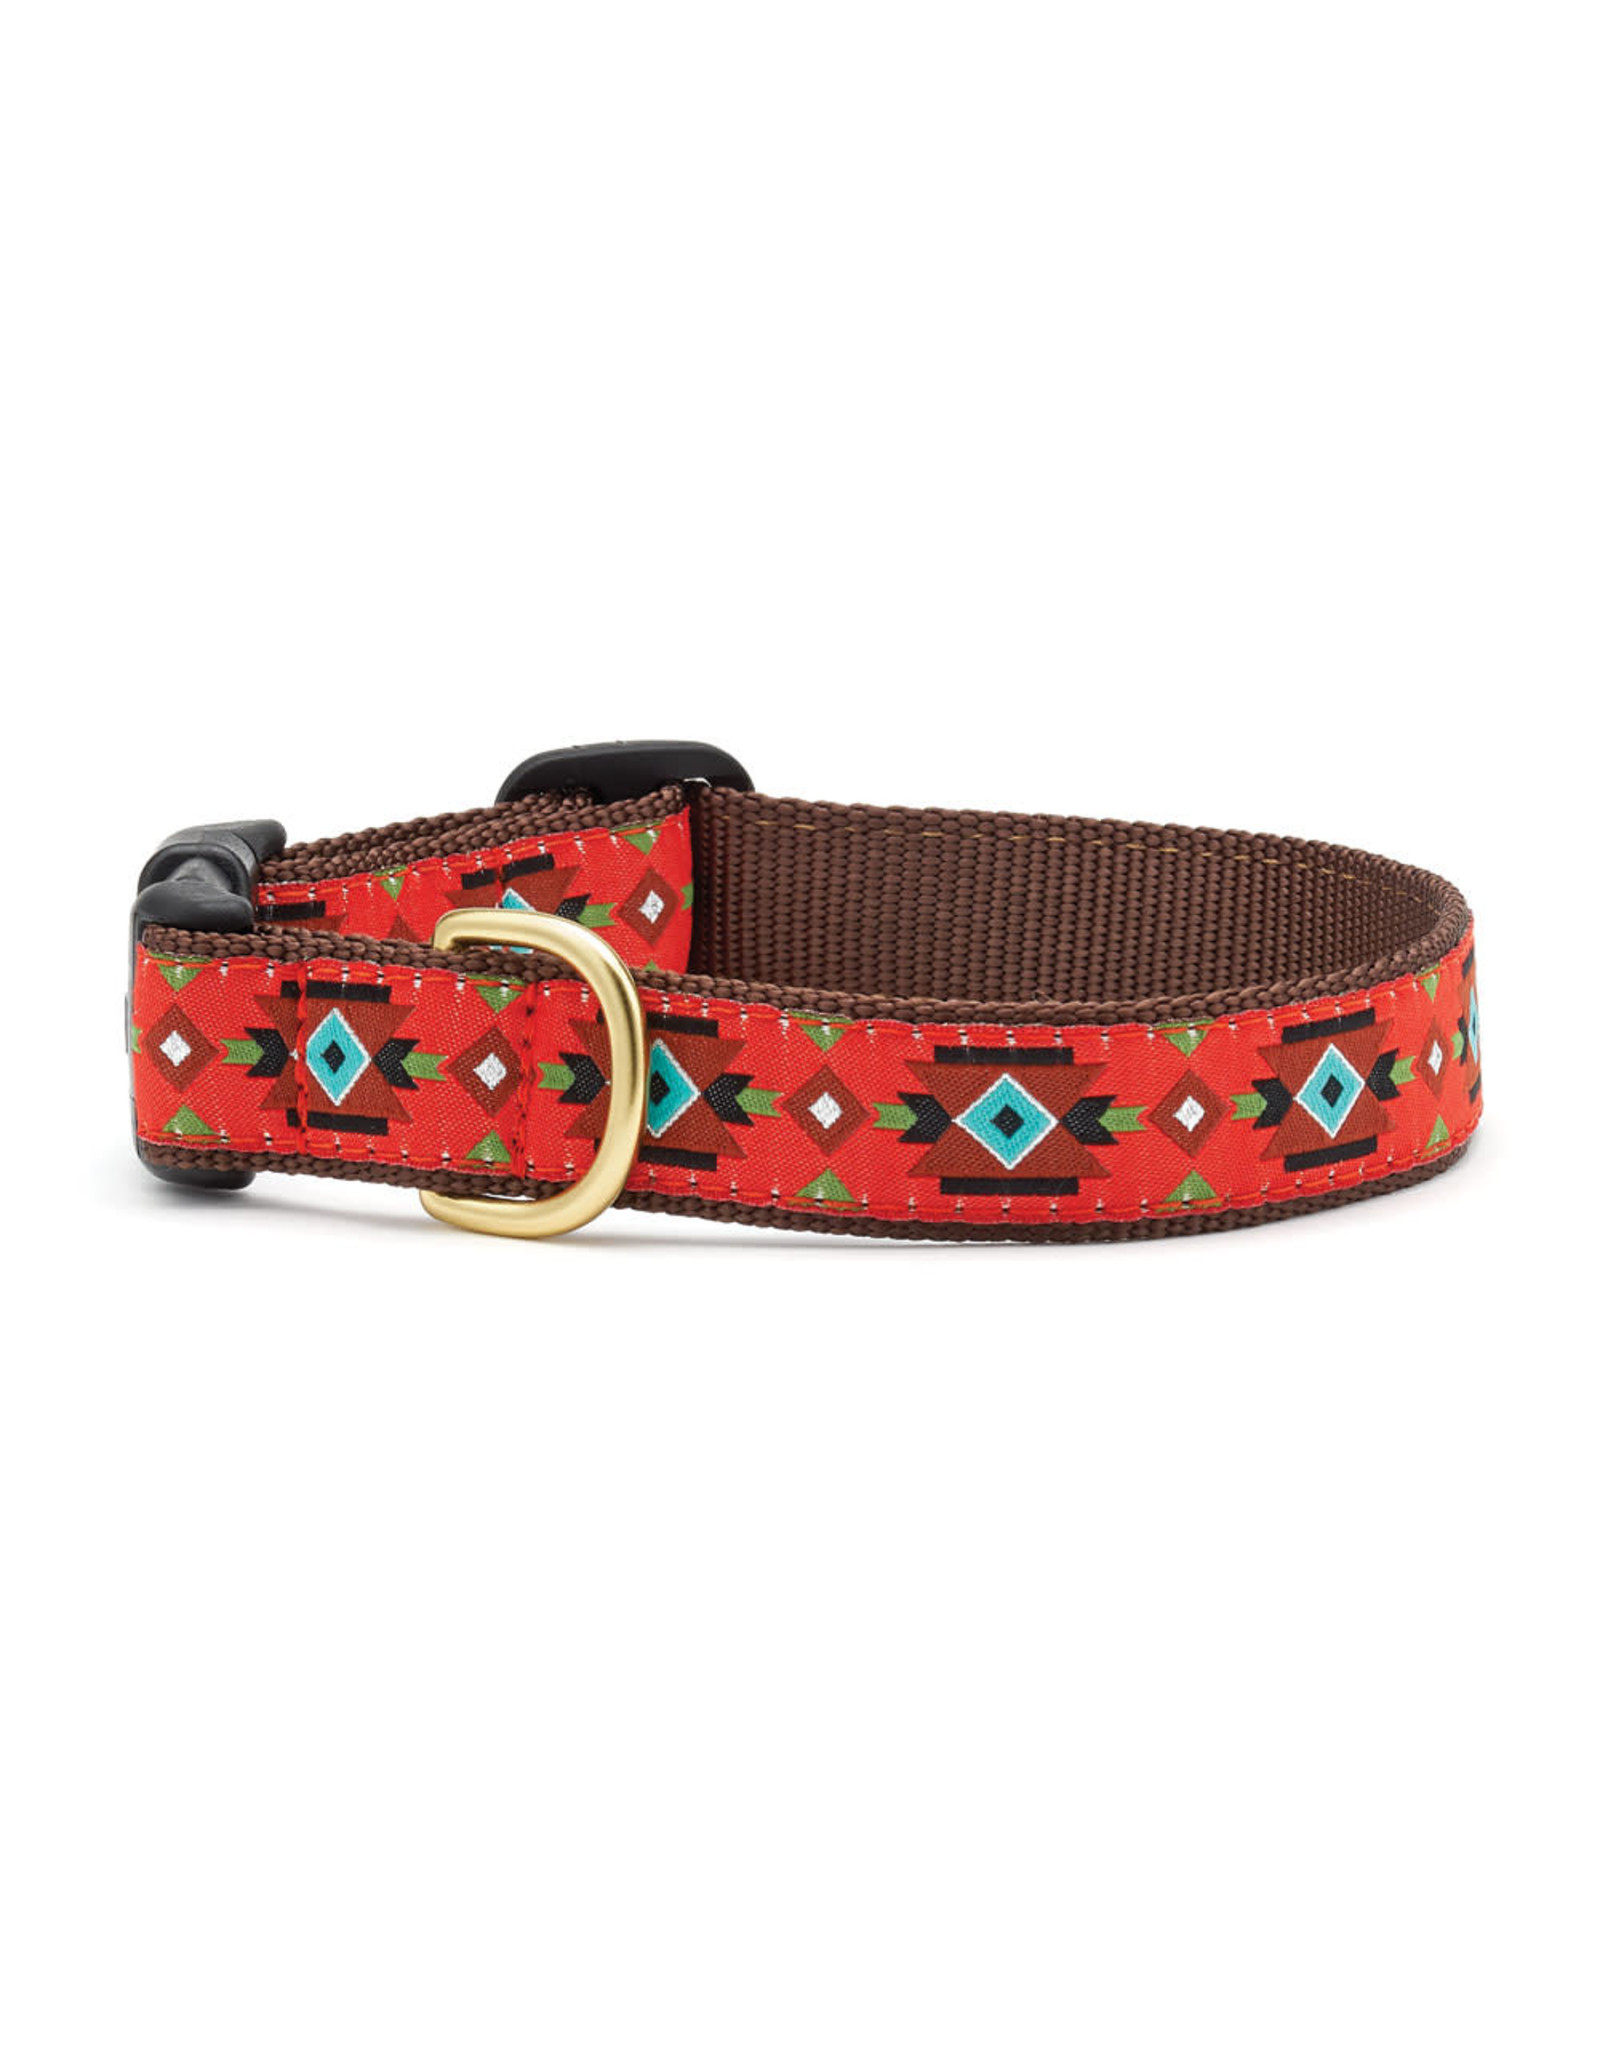 Up Country Sedona Collar: Wide, L